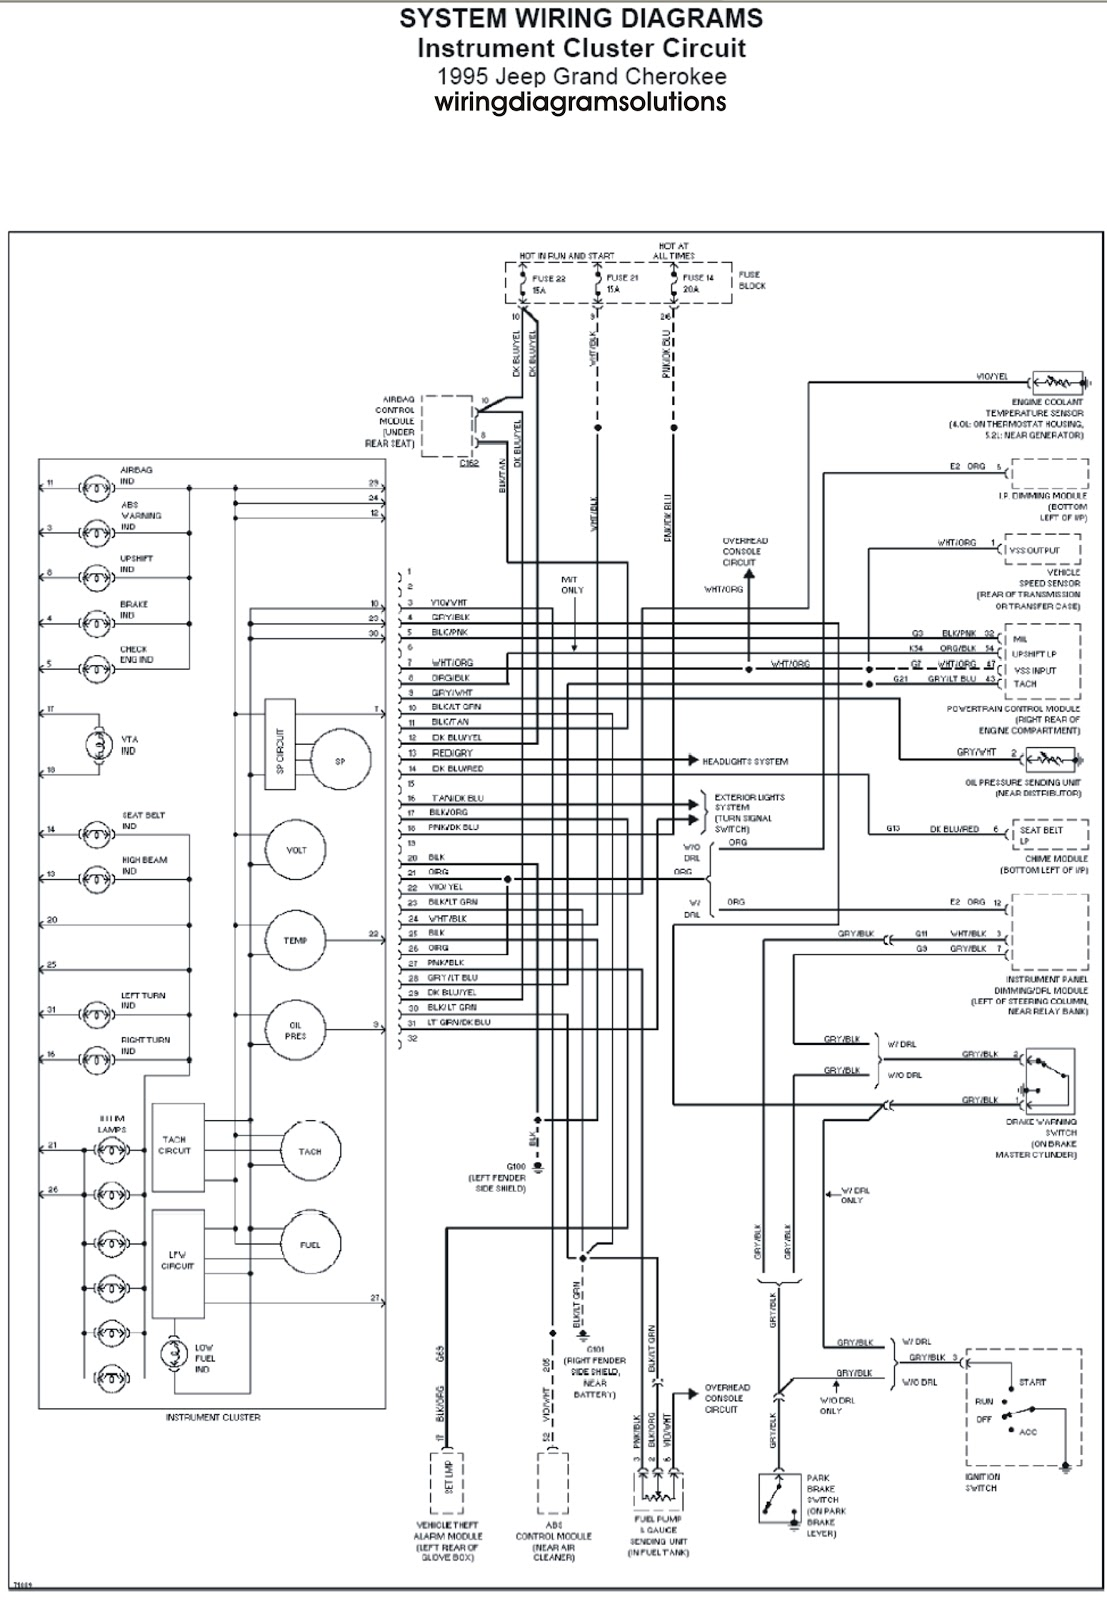 1998 jeep 4 0 wiring schematic simple wiring diagram jeep grand cherokee 4 0 engine 1993 jeep [ 1107 x 1600 Pixel ]